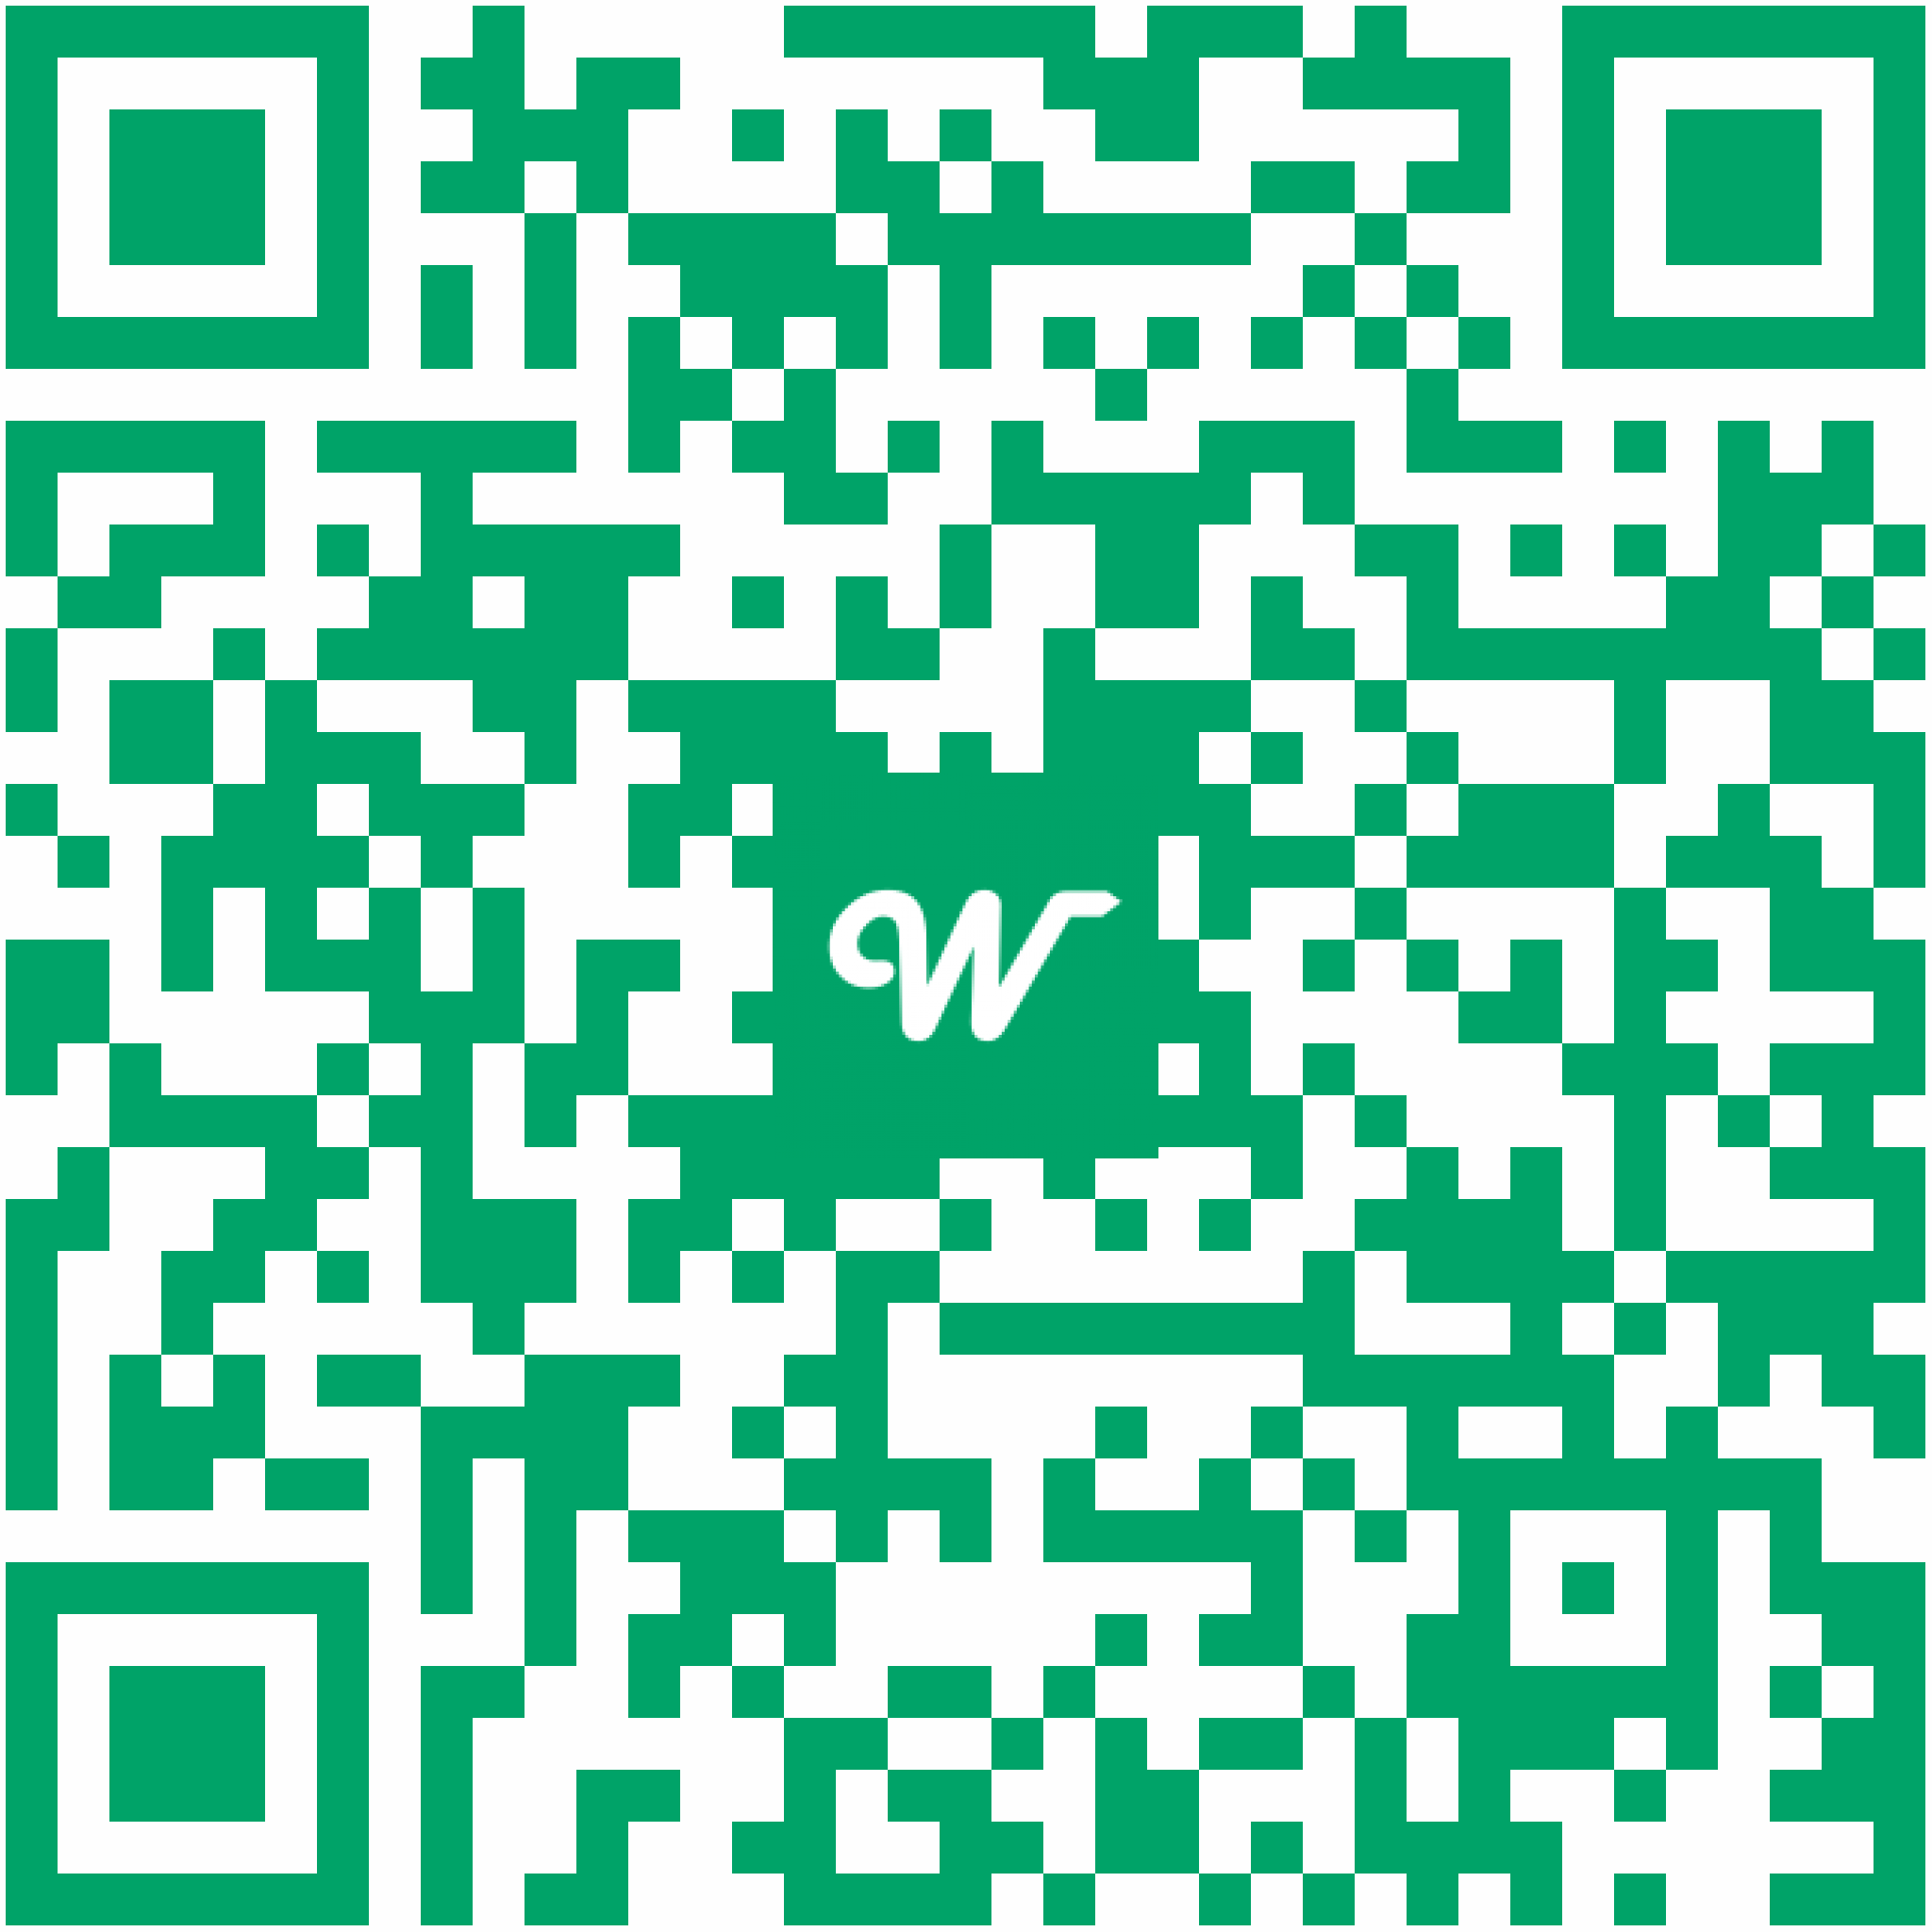 Printable QR code for 255-222 Pan-Philippine Hwy